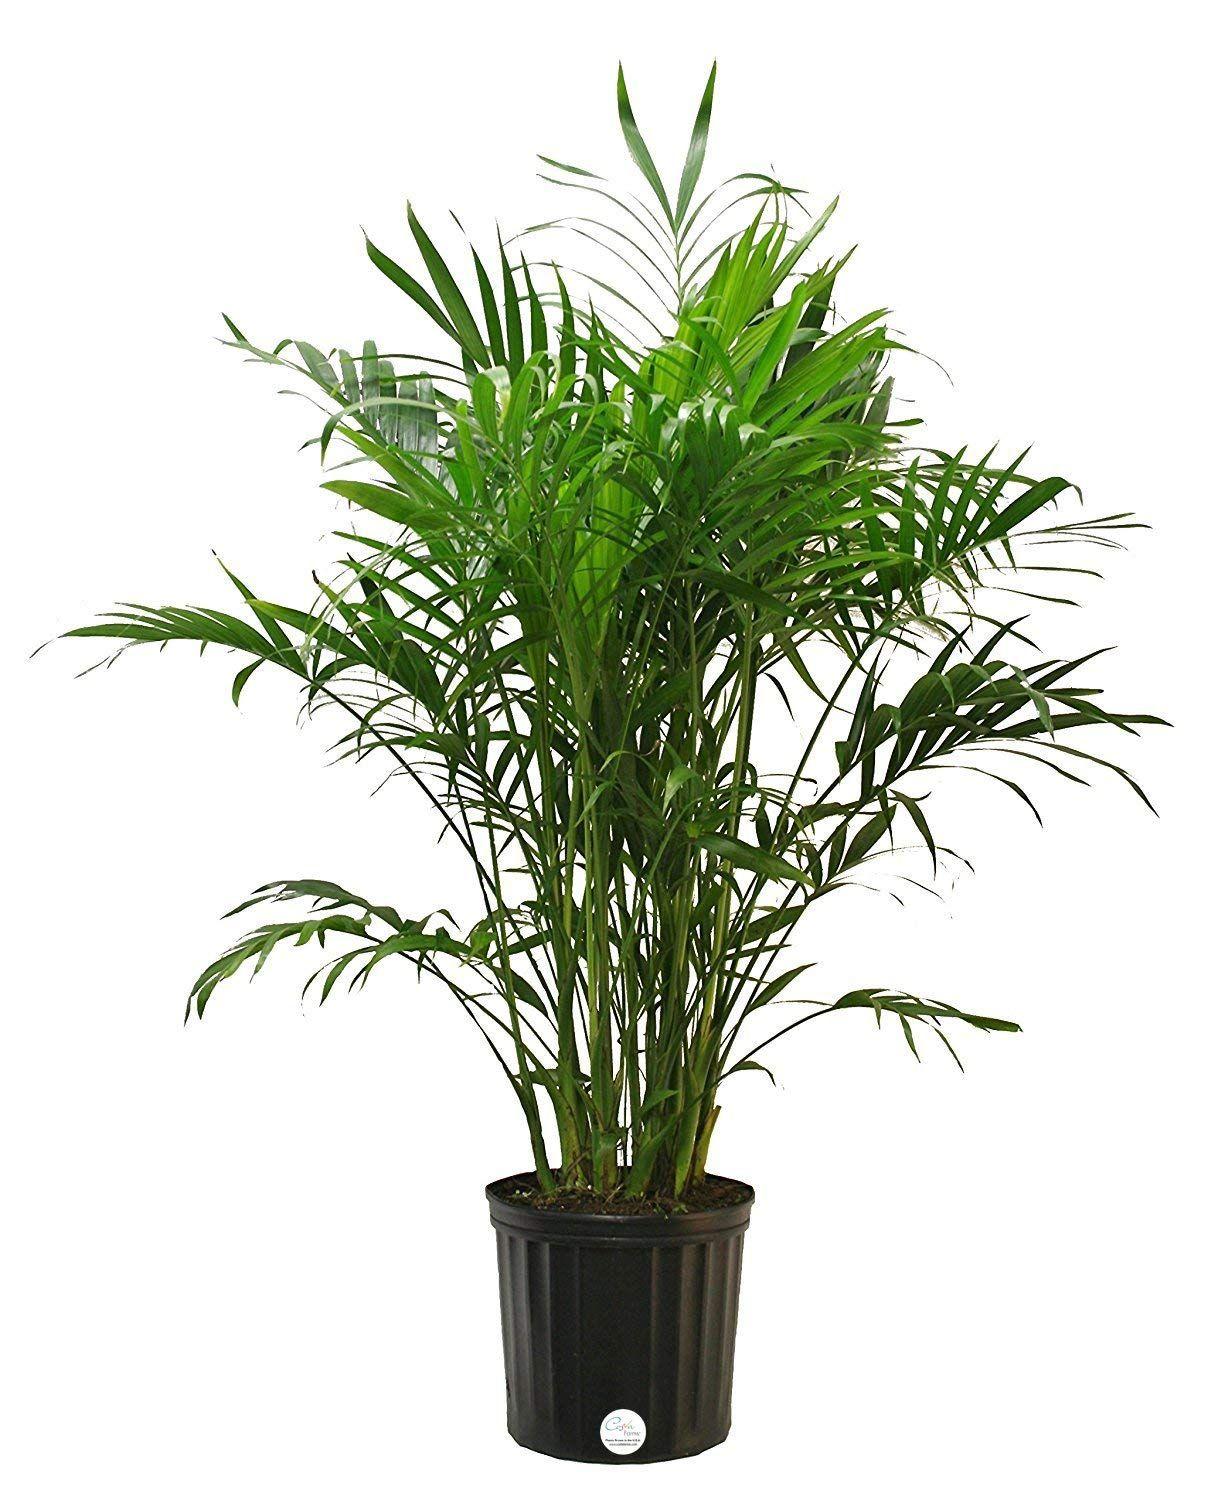 Costa farms cat palm live indoor floor plant in 875inch